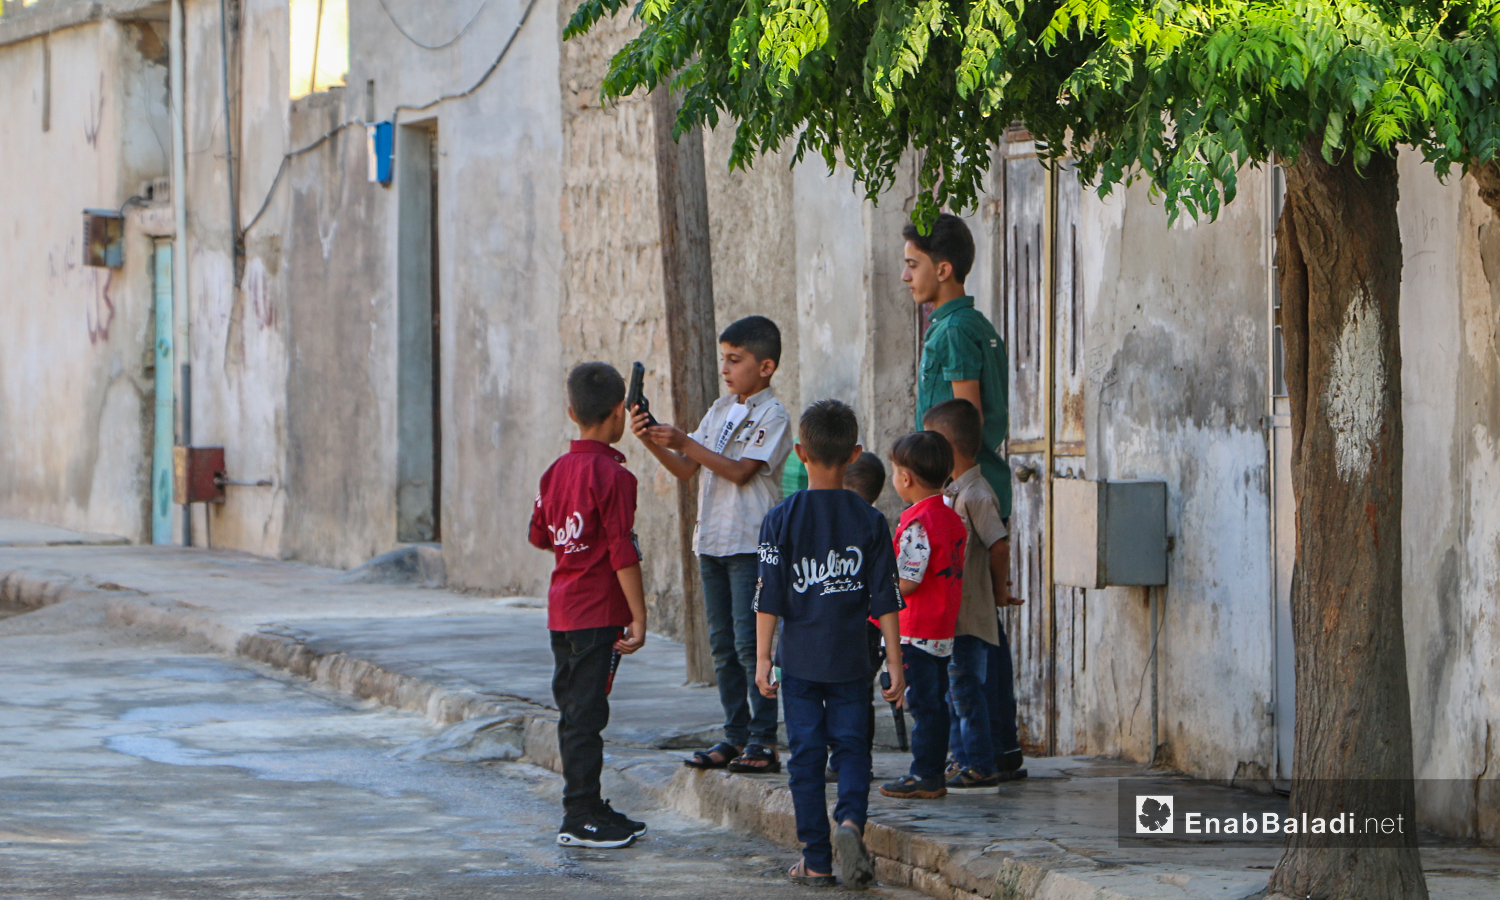 Children in front of their house celebrating the first day of Eid al-Adha in Dabiq town in northern Aleppo countryside – 31 July 2020 (Enab Baladi / Abdul Salam Majan)